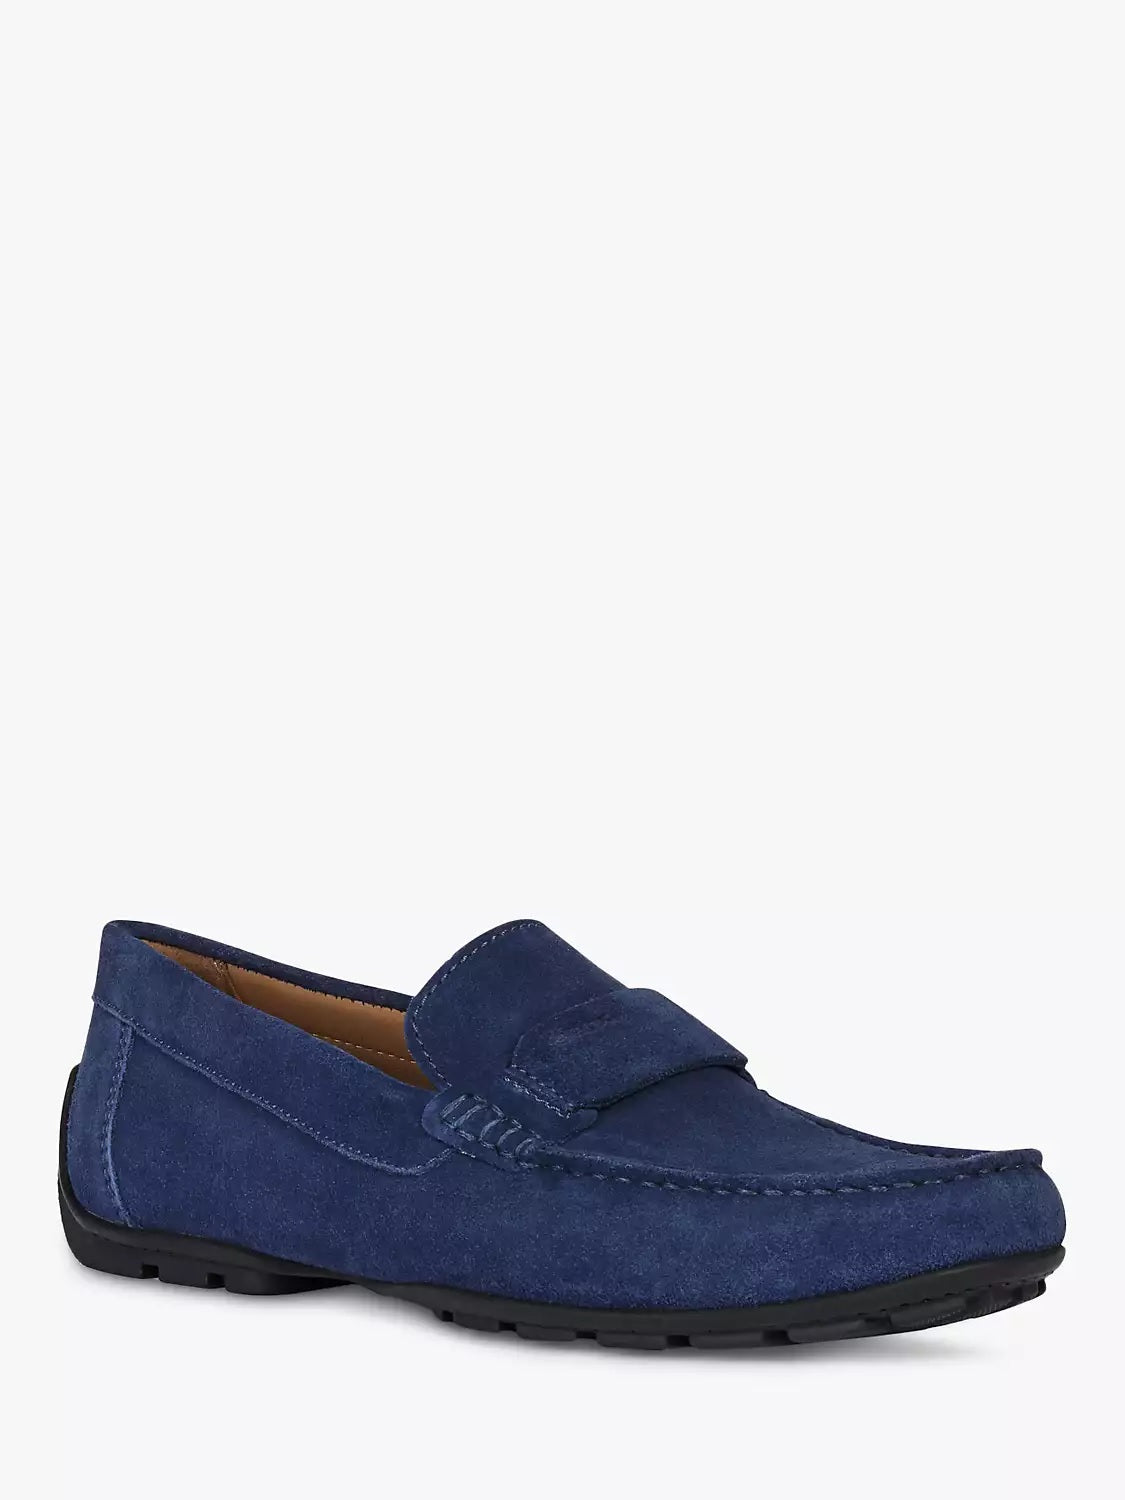 GEOX - MONER Blue Suede Loafers U1544A00022C4002